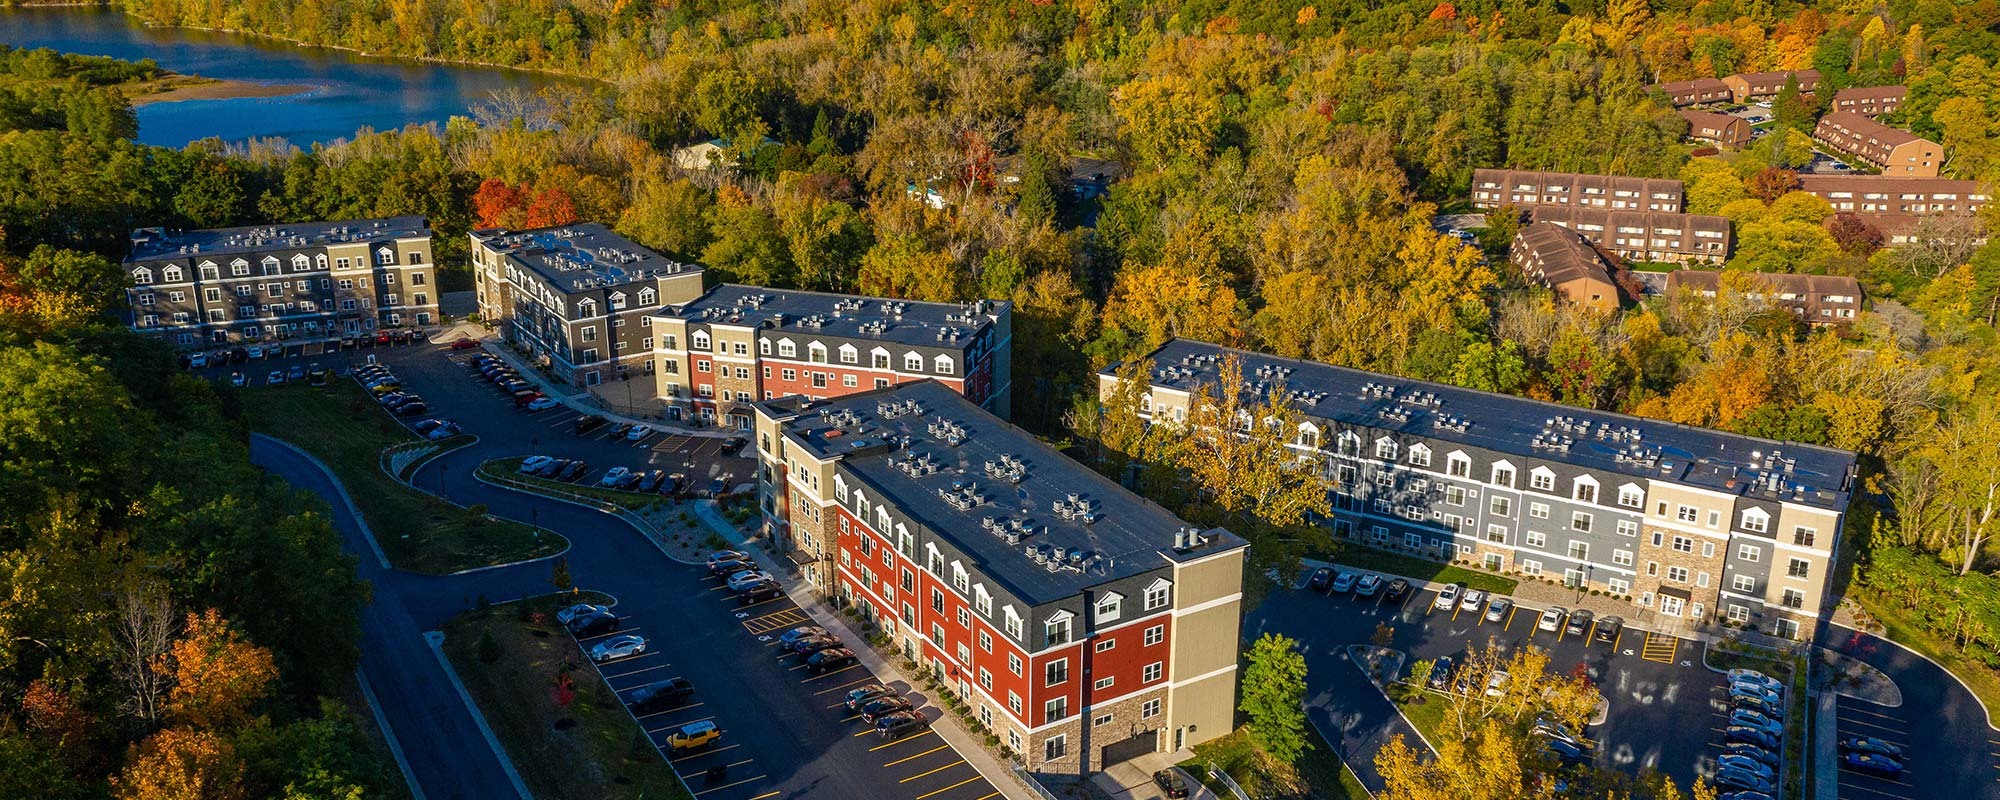 Ellison Heights from above